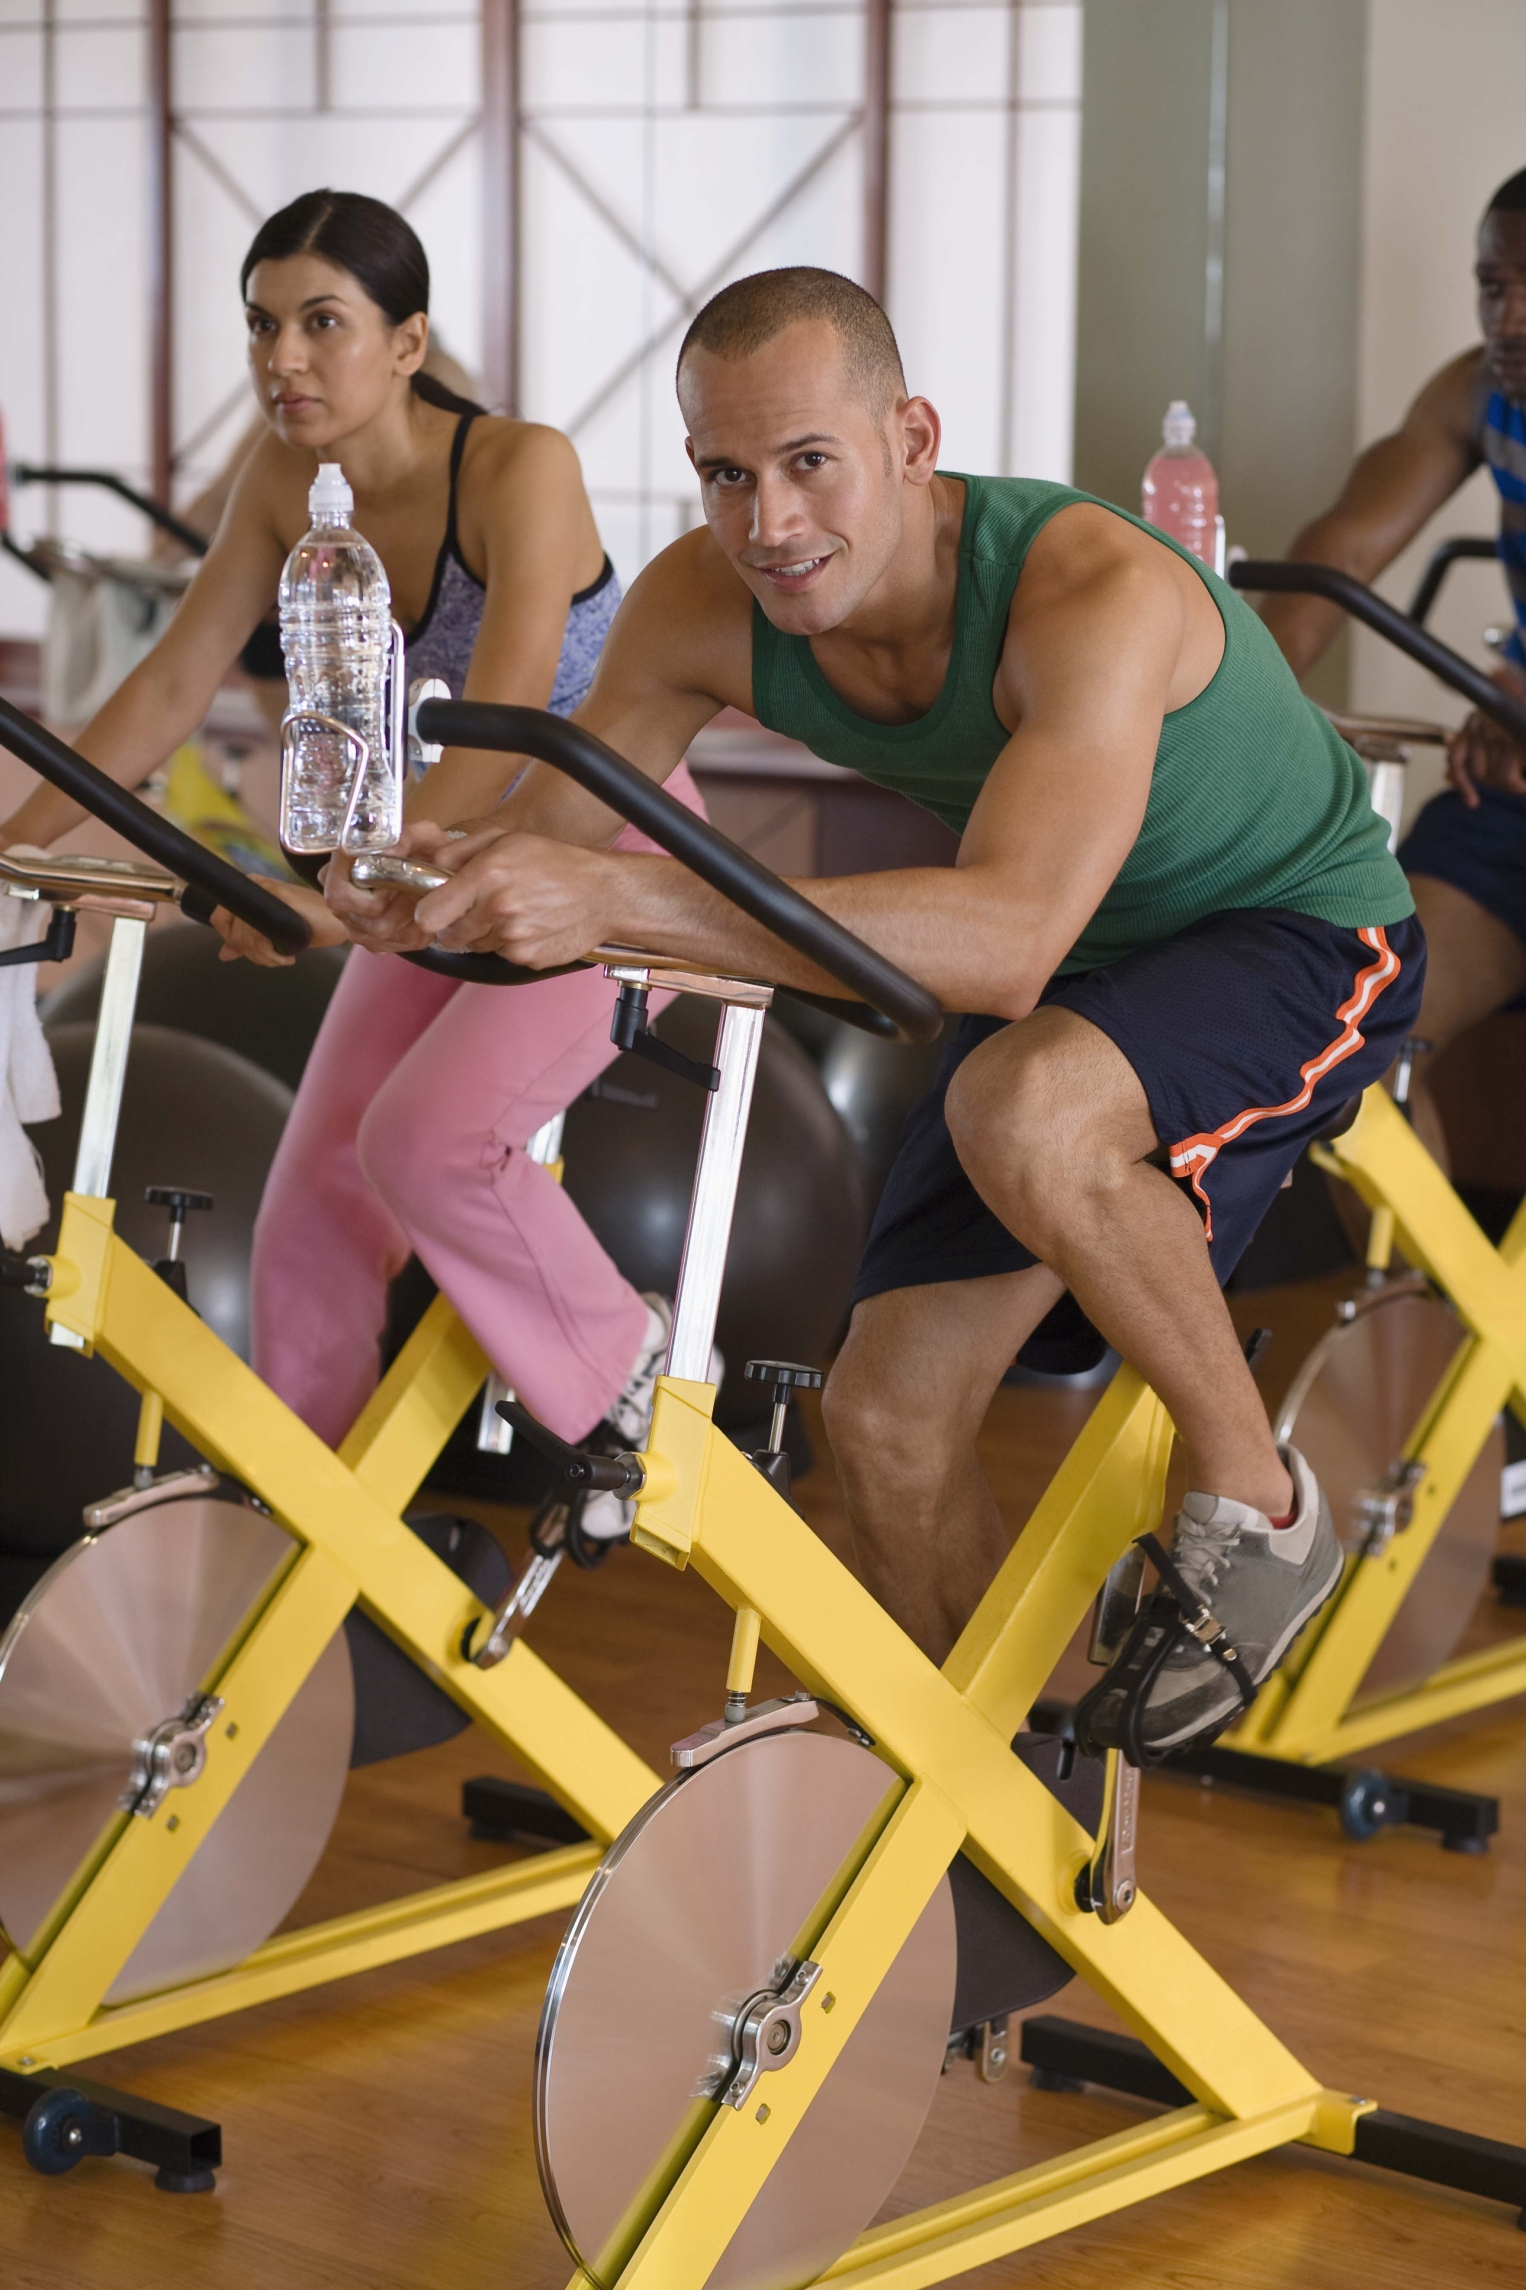 Focus on keeping an exercise routine going over months, not on grams per day.